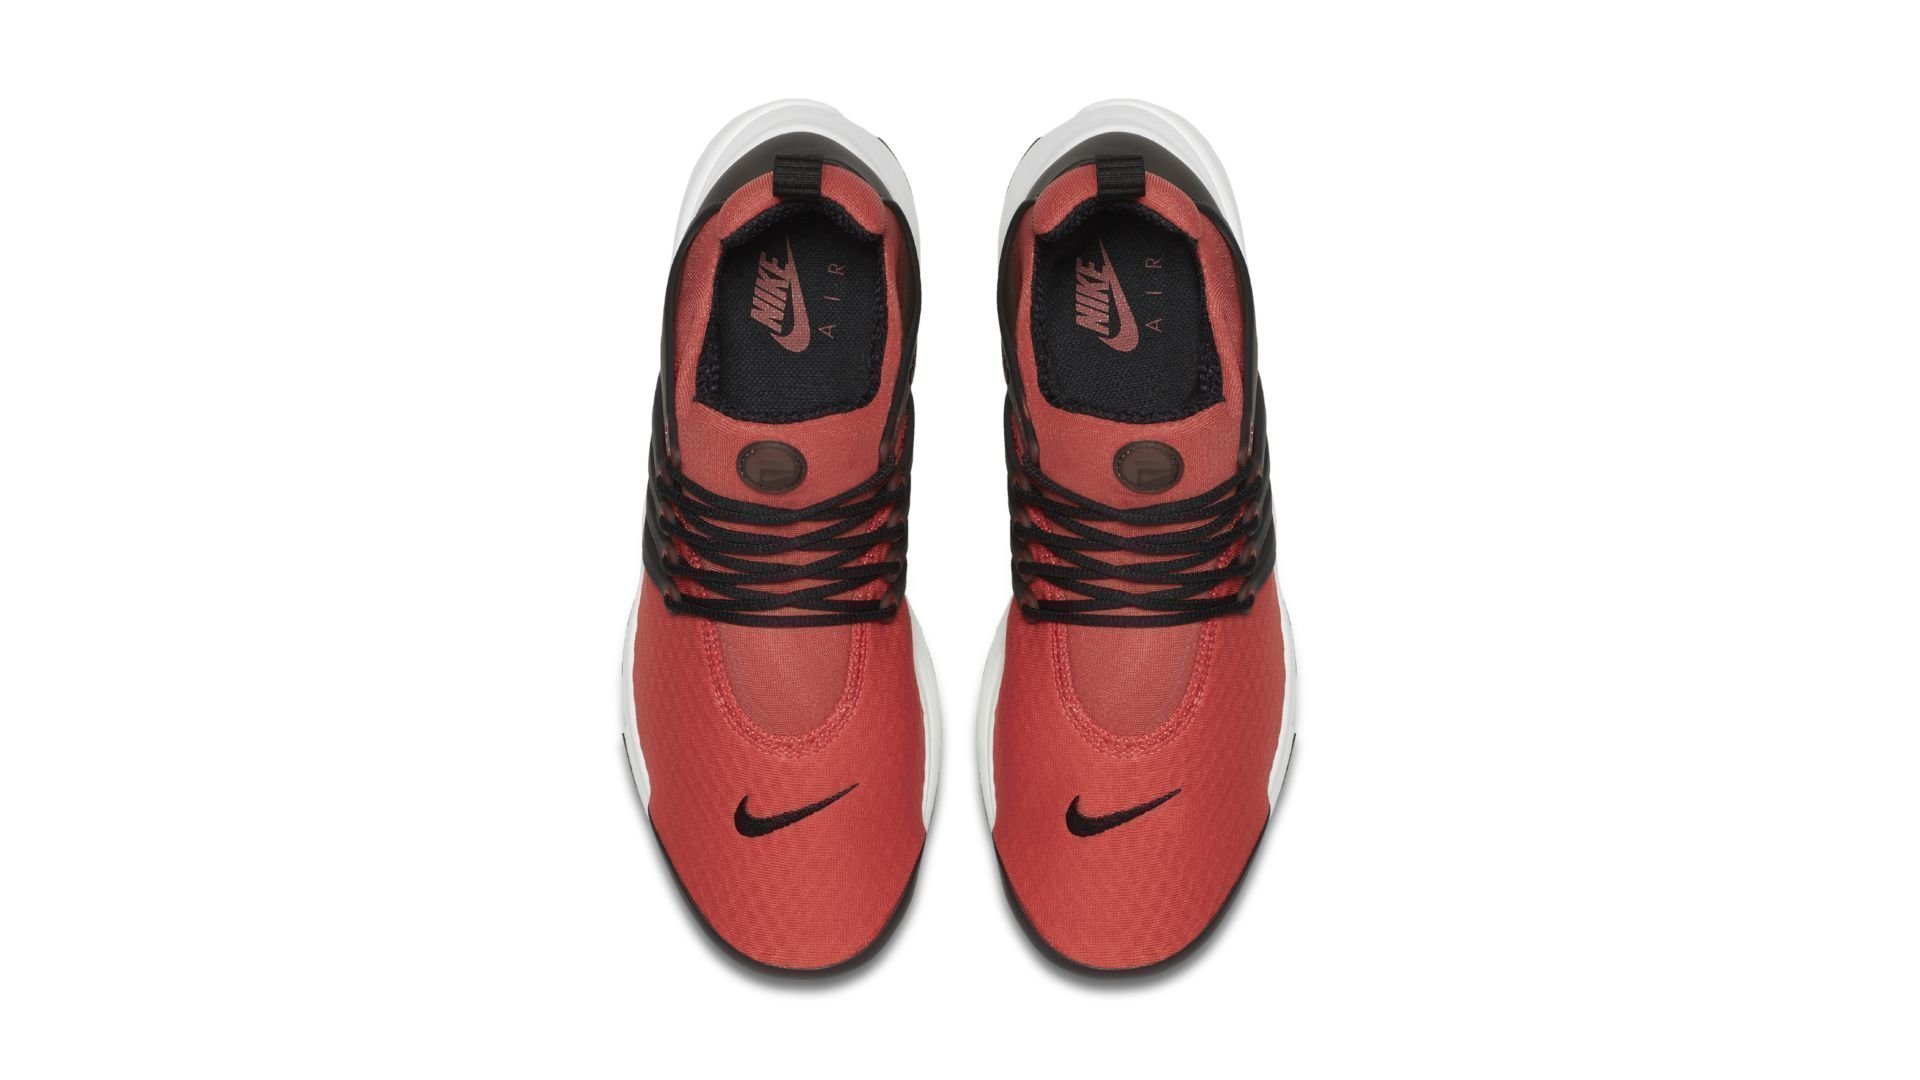 Nike Air Presto Track Red Black (848187-600)